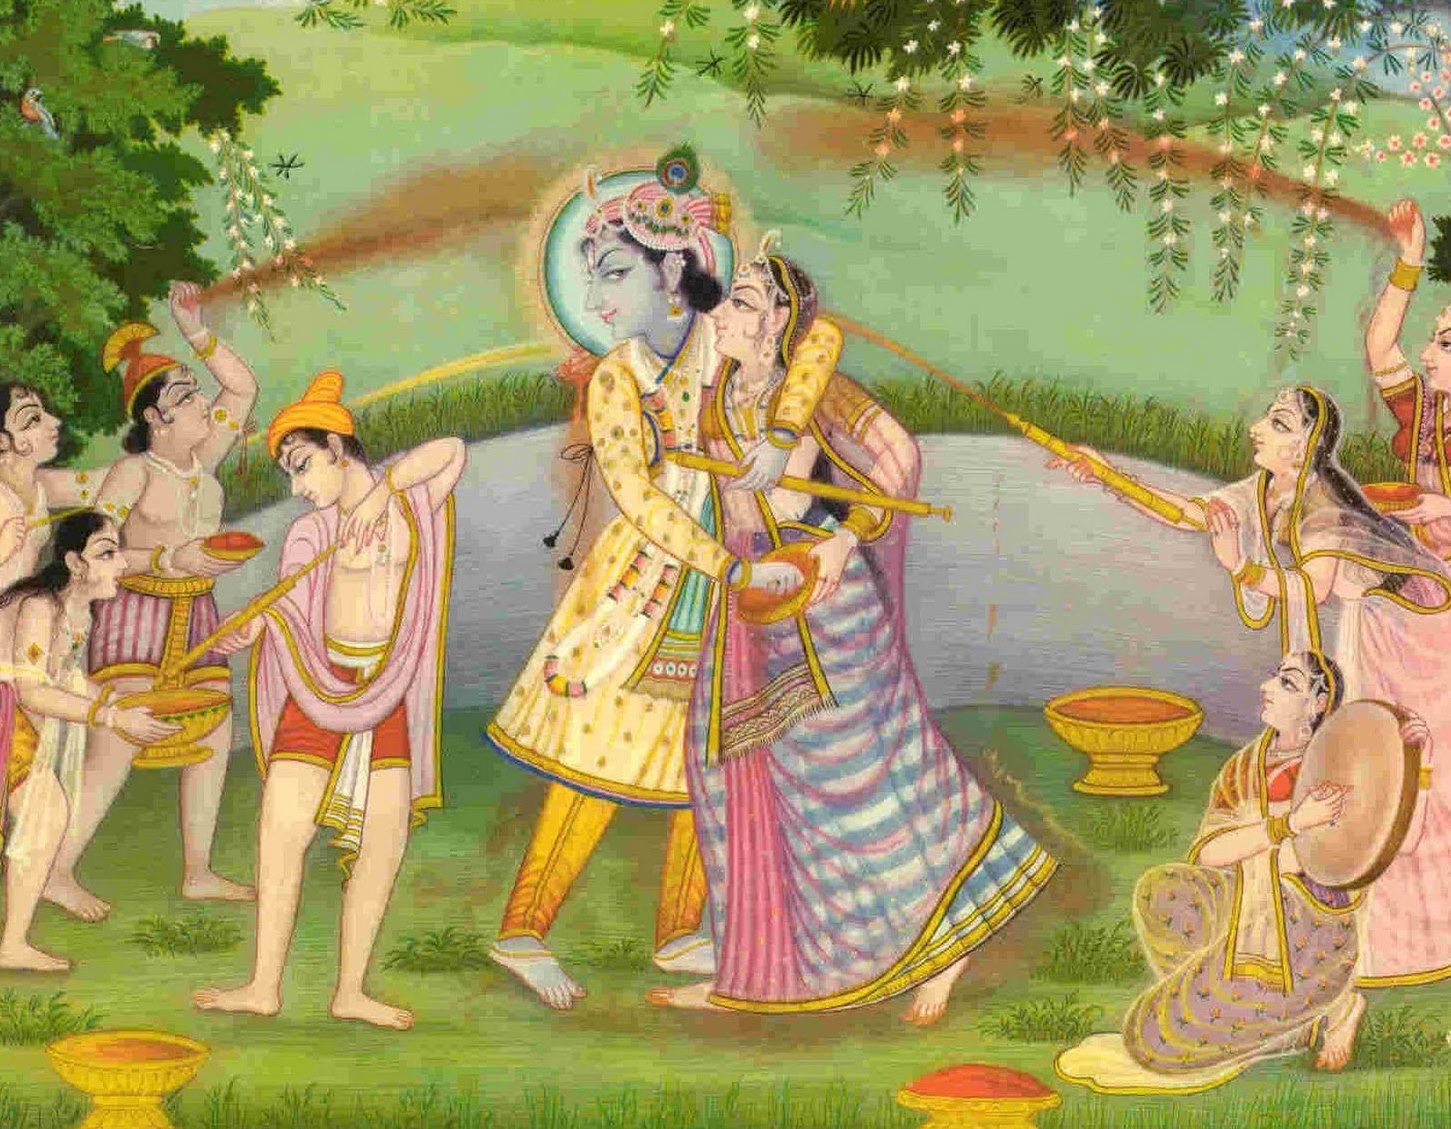 Sita Rama playing Holi